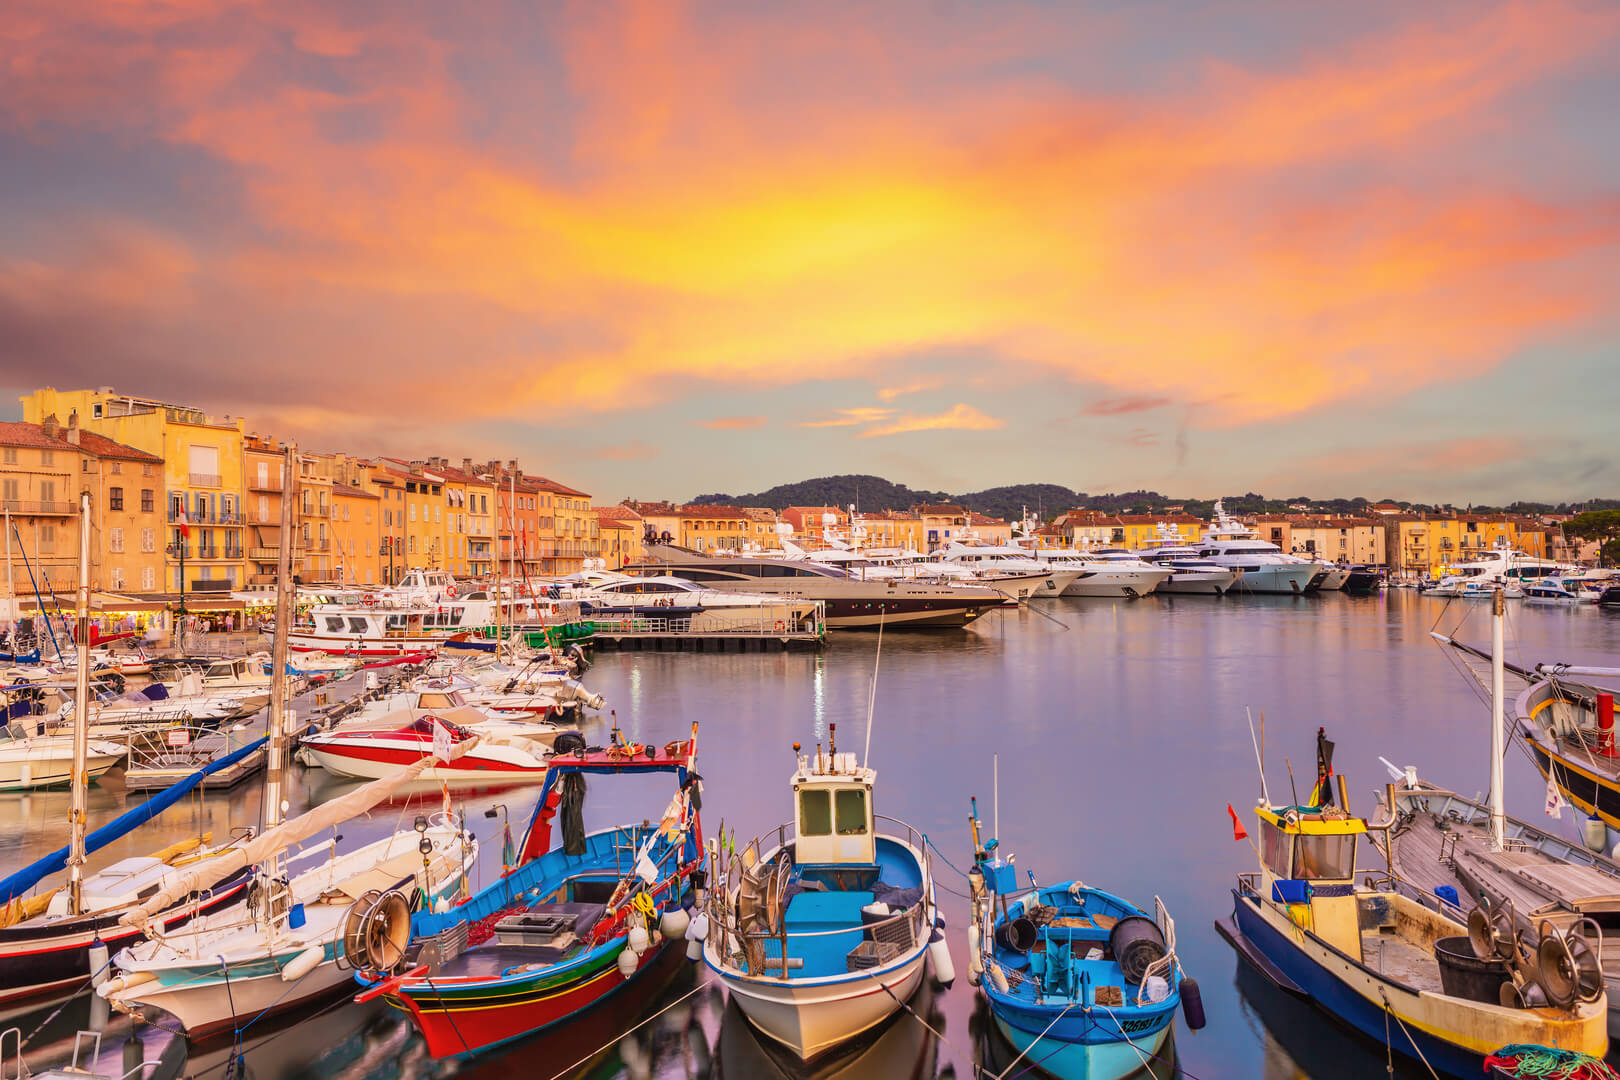 Sunset over Saint Tropez old town, France